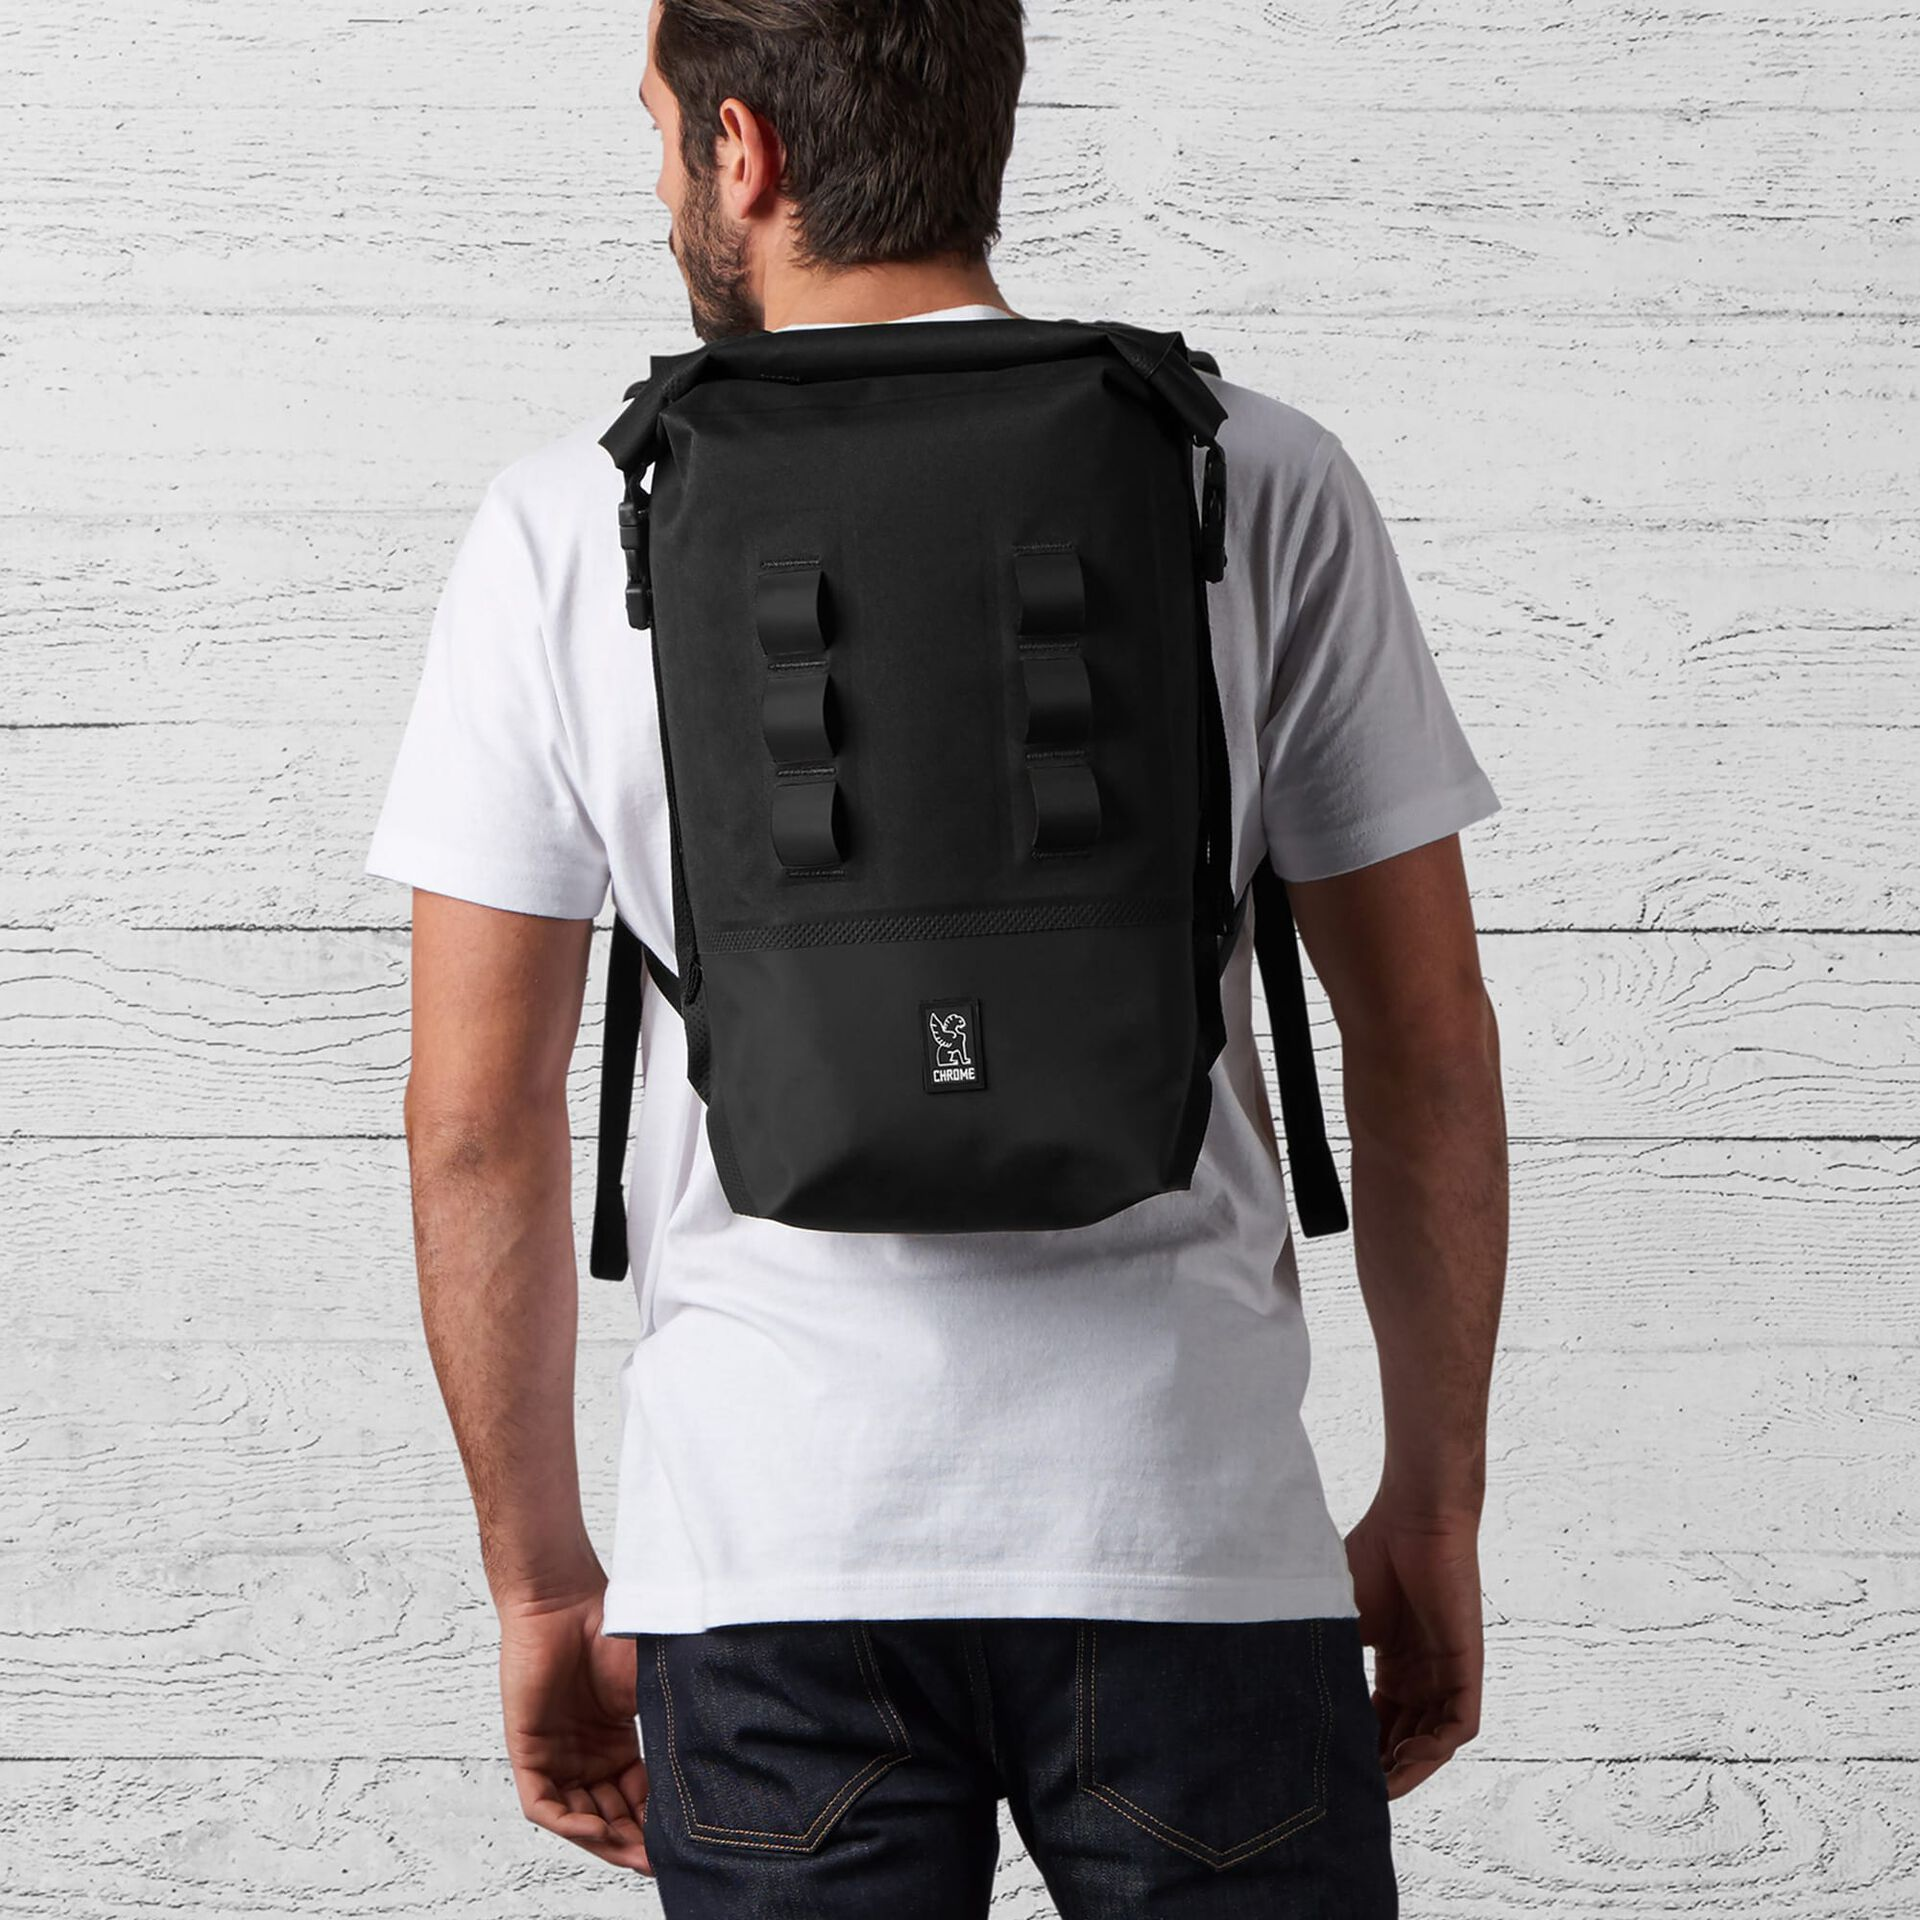 Urban Ex Rolltop 18L Backpack in Black - wide view.